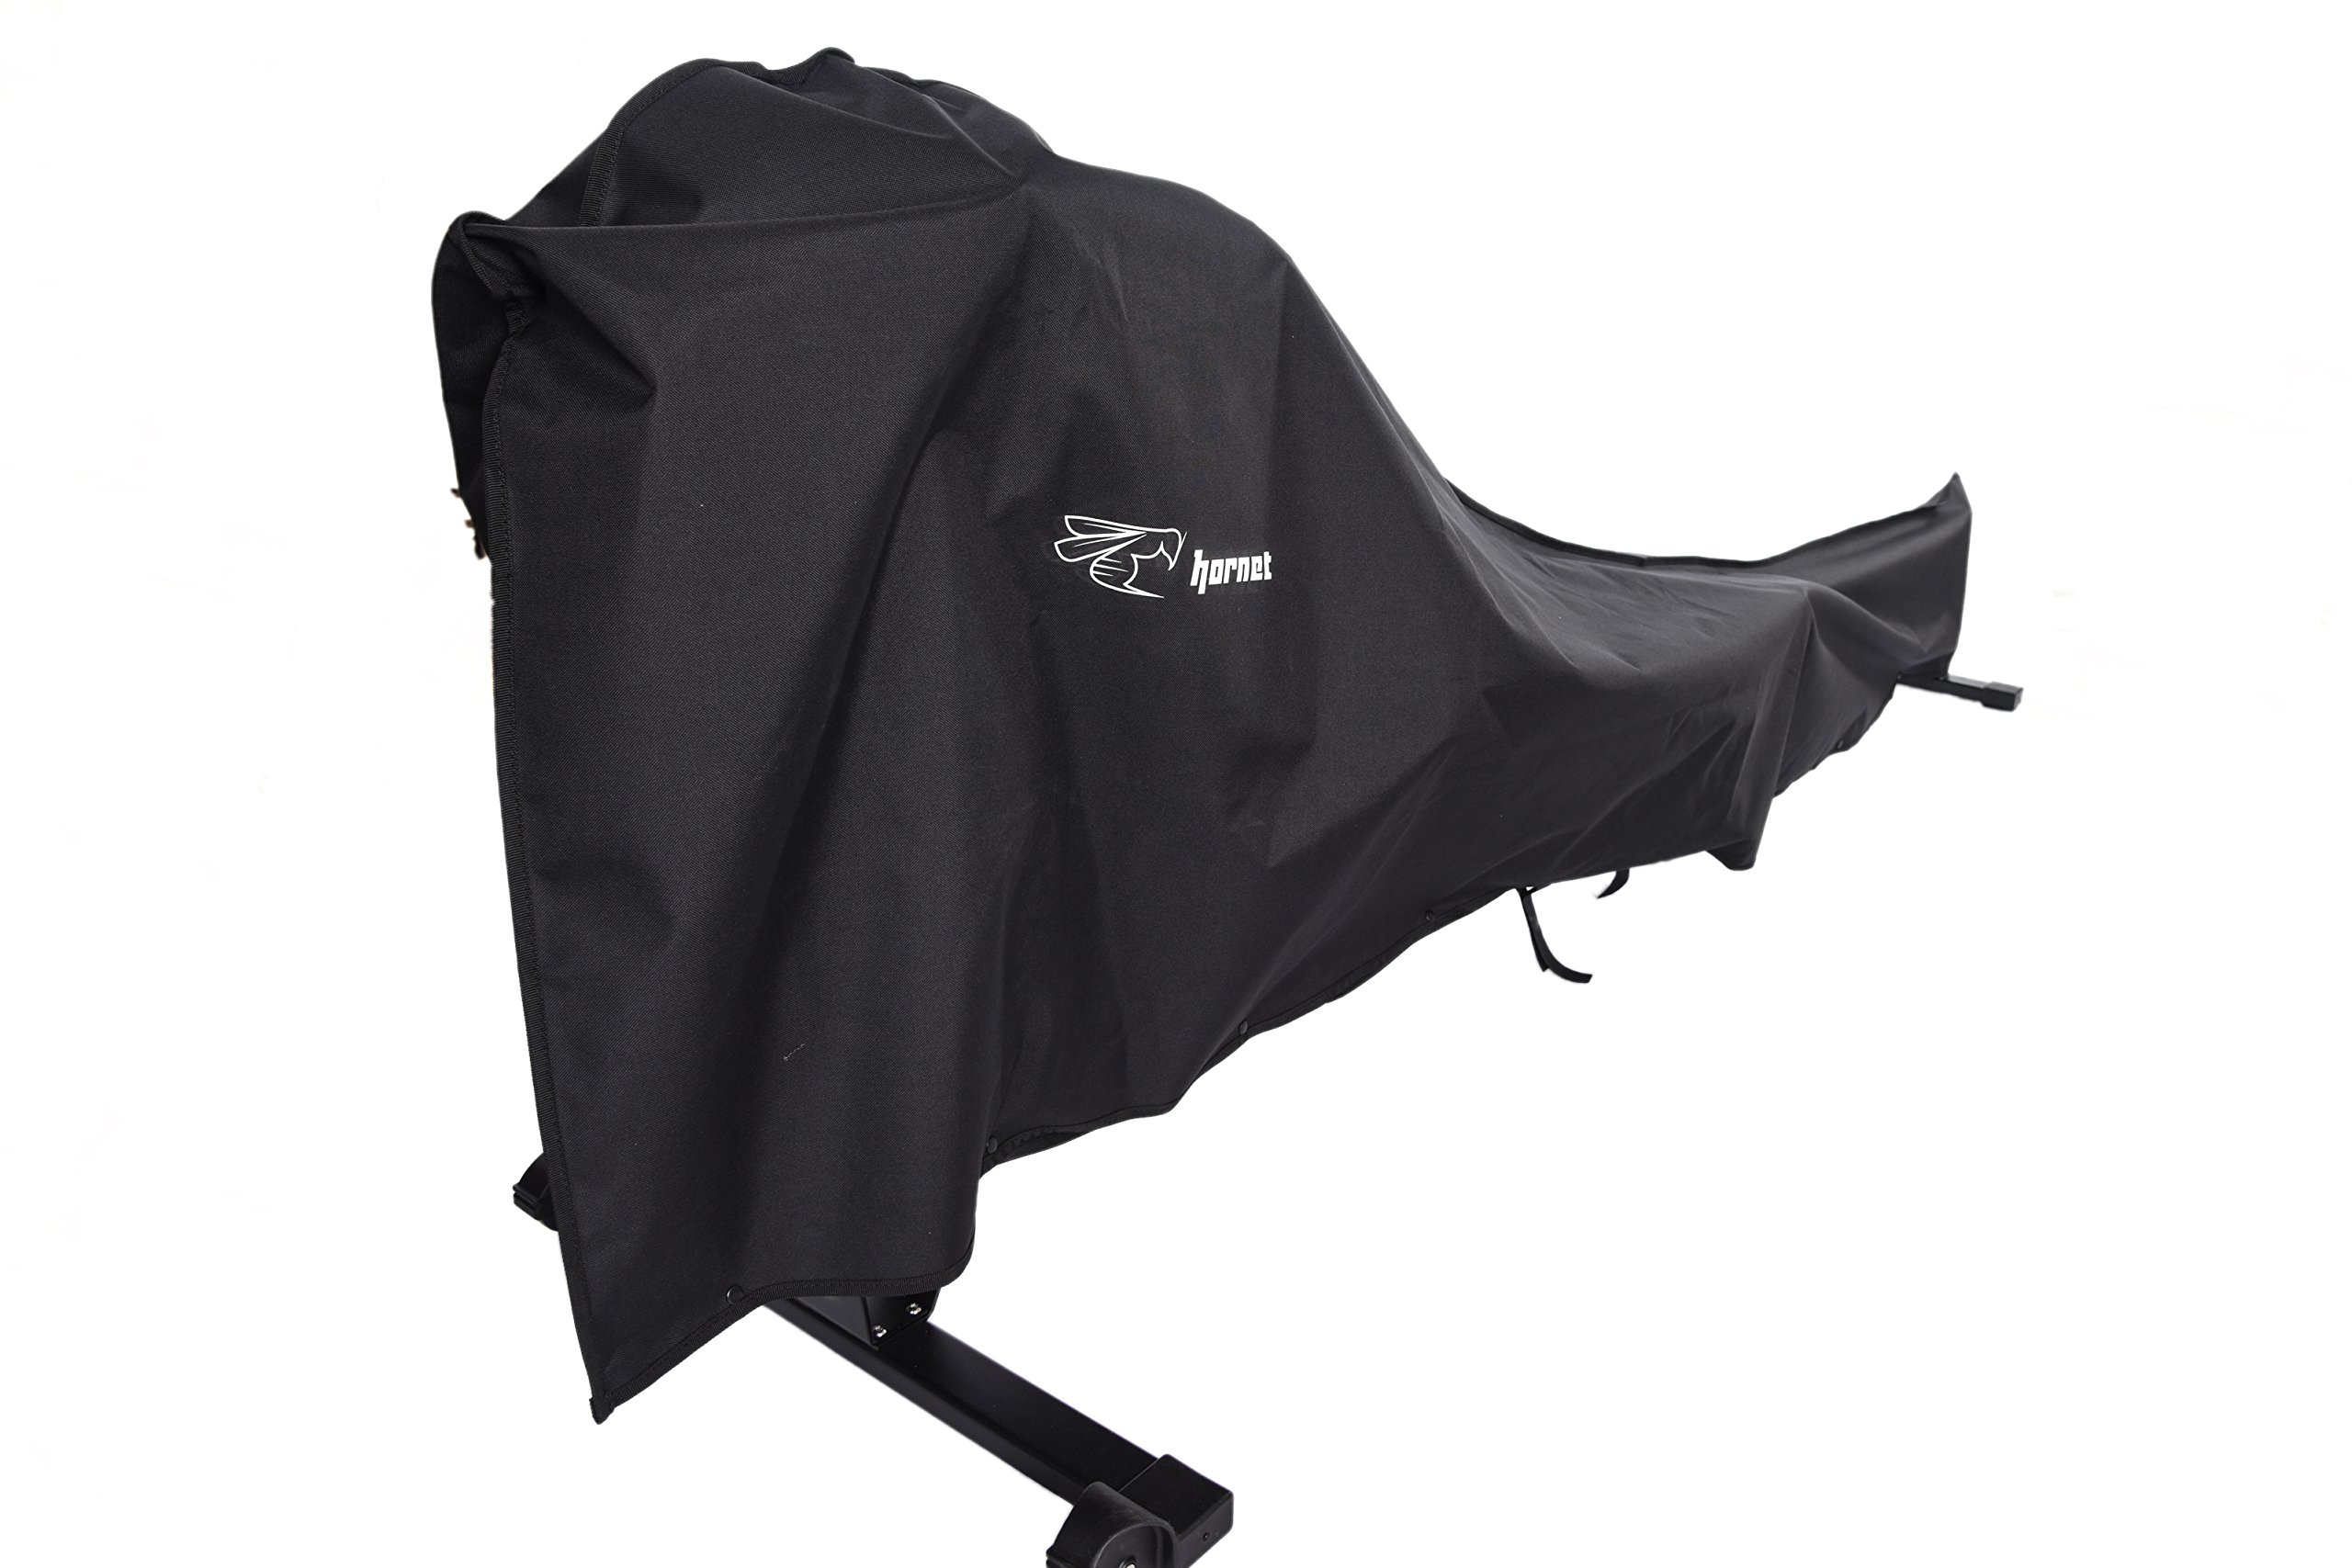 Hornet Watersports Protective Cover for The Concept 2 Rowing Machine- Free Bonus: Rowing Cushion by Hornet Watersports (Image #1)